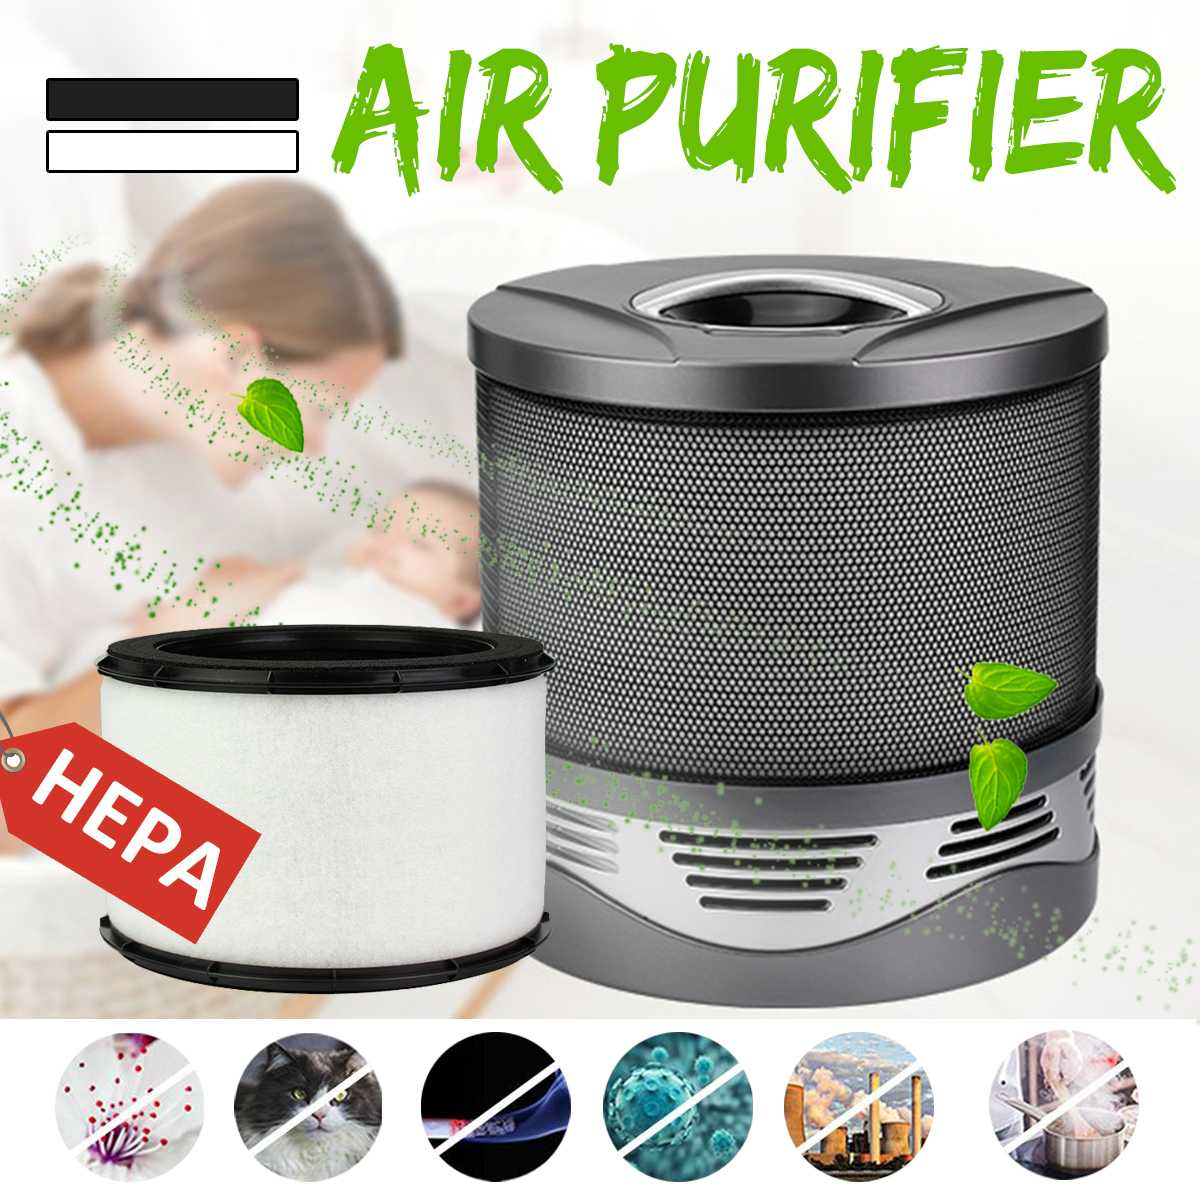 New Household Air Purifier Sterilizer Air Wash Cleaning Lonizer Cleaner with True HEPA Filter FormaldehydeSmoke Dust Odor RemoveNew Household Air Purifier Sterilizer Air Wash Cleaning Lonizer Cleaner with True HEPA Filter FormaldehydeSmoke Dust Odor Remove